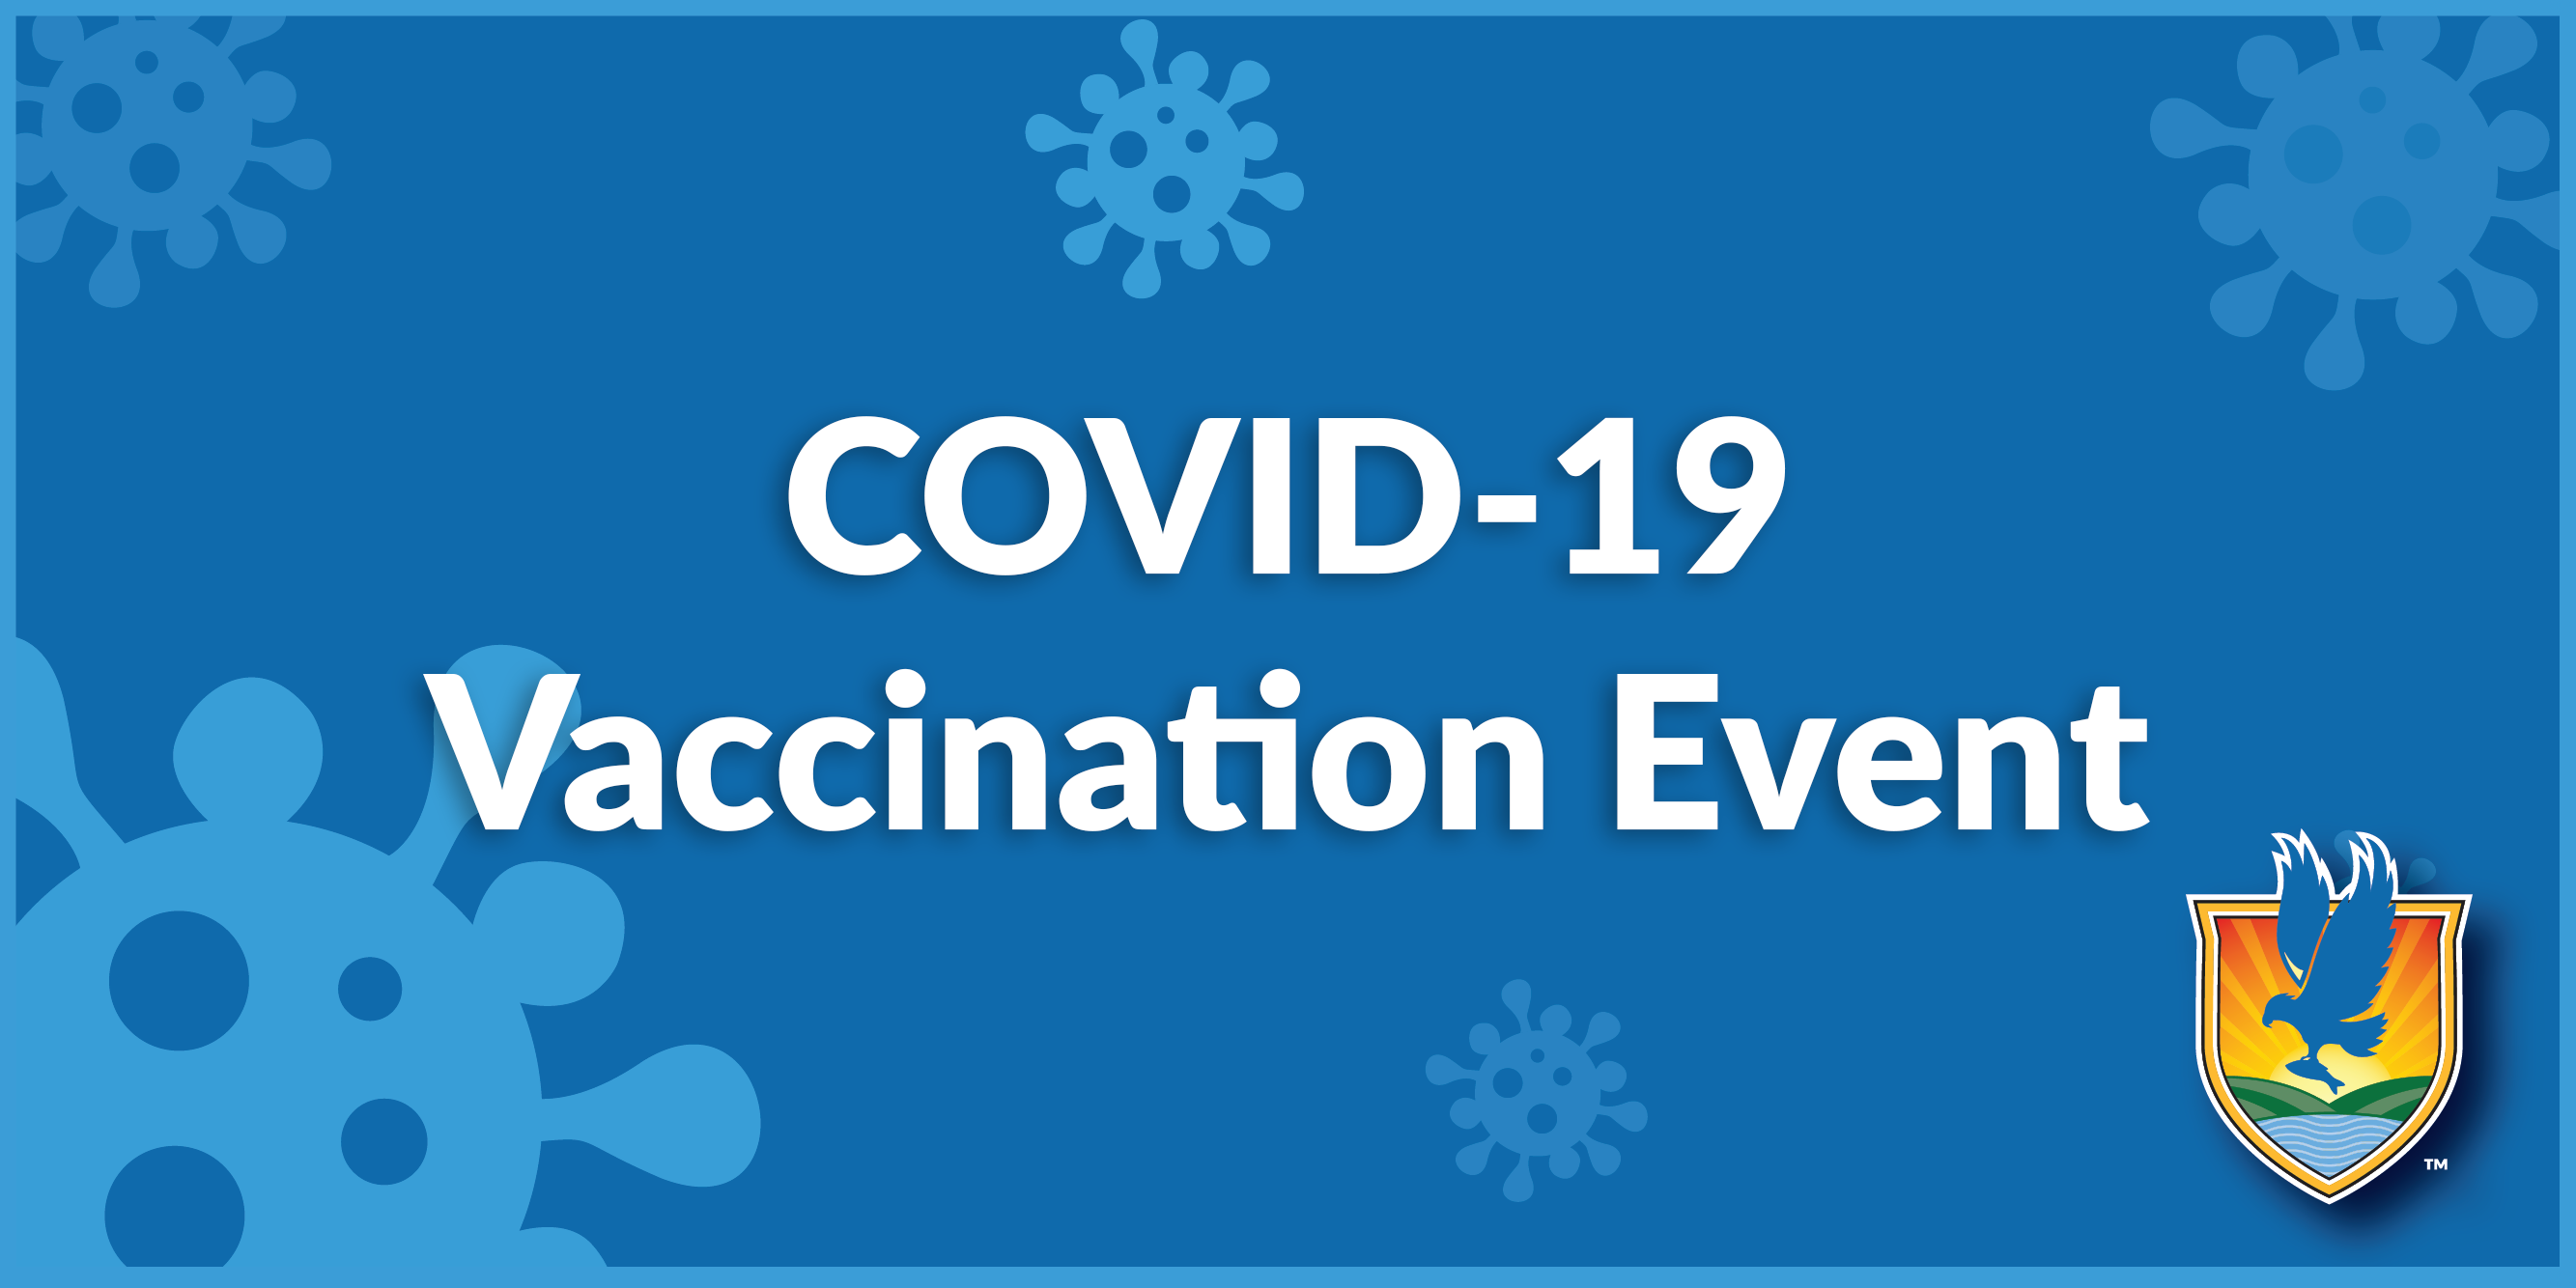 LSSC offers second COVID-19 vaccination event on May 5